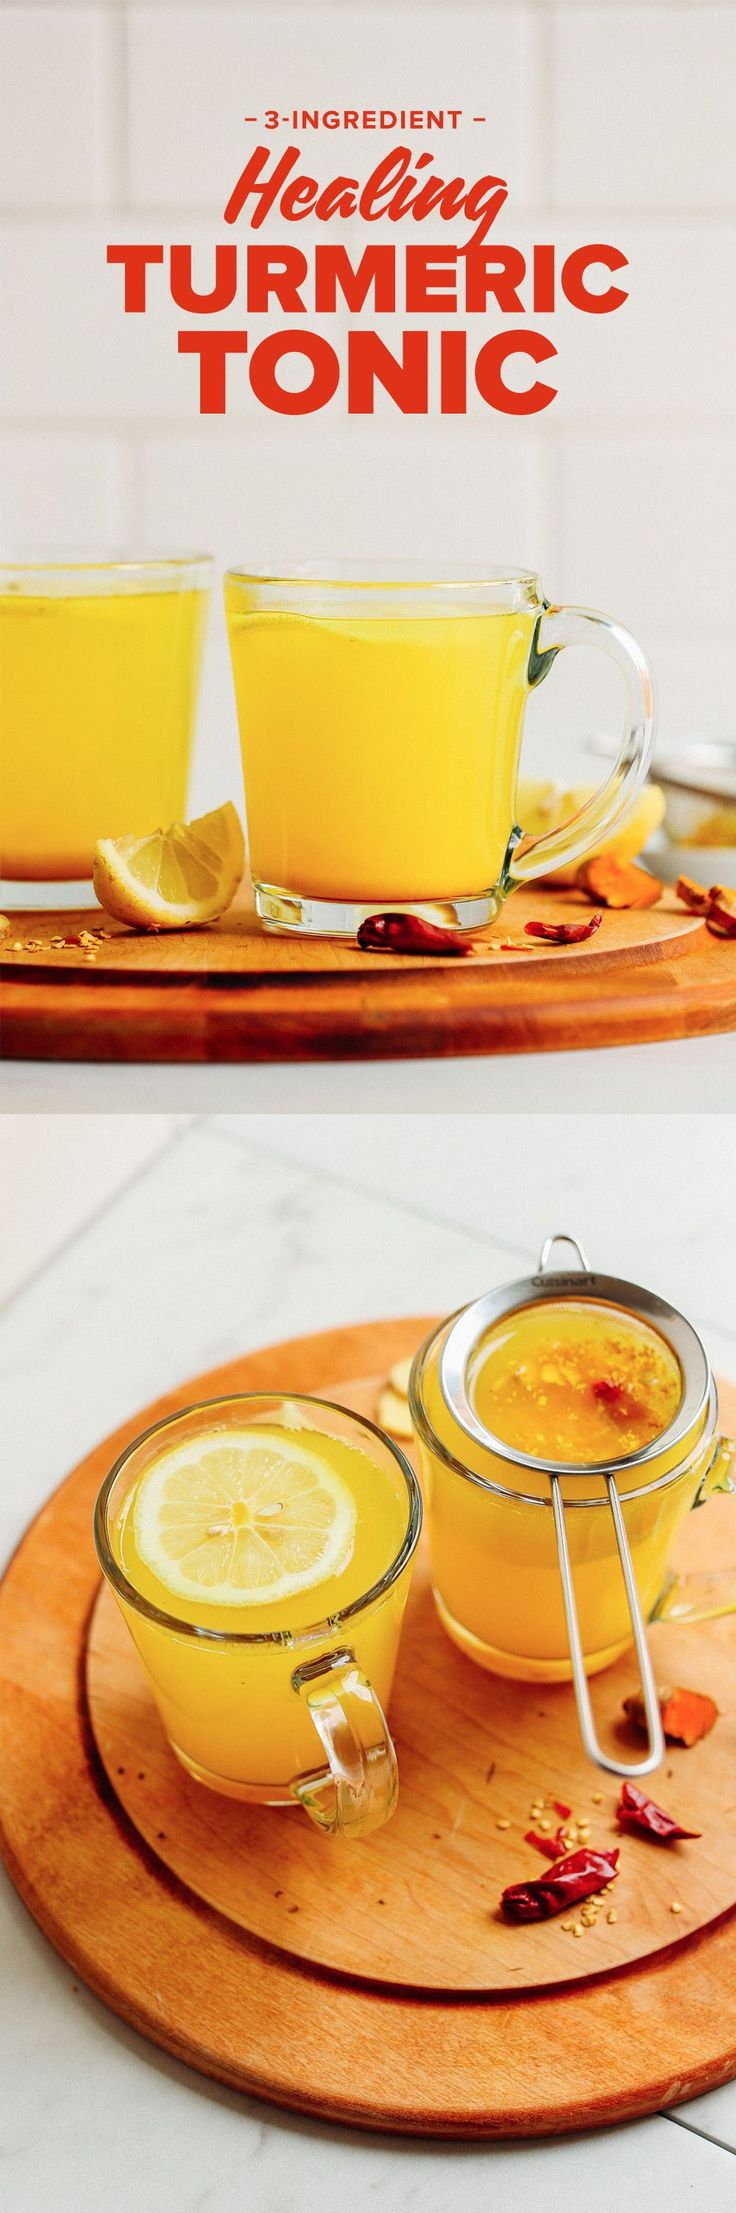 Healing 3-Ingredient Turmeric Tonic -   AMAZING 3-Ingredient Turmeric Ginger TONIC! Healing, gingery, naturally sweet, SO delicious!